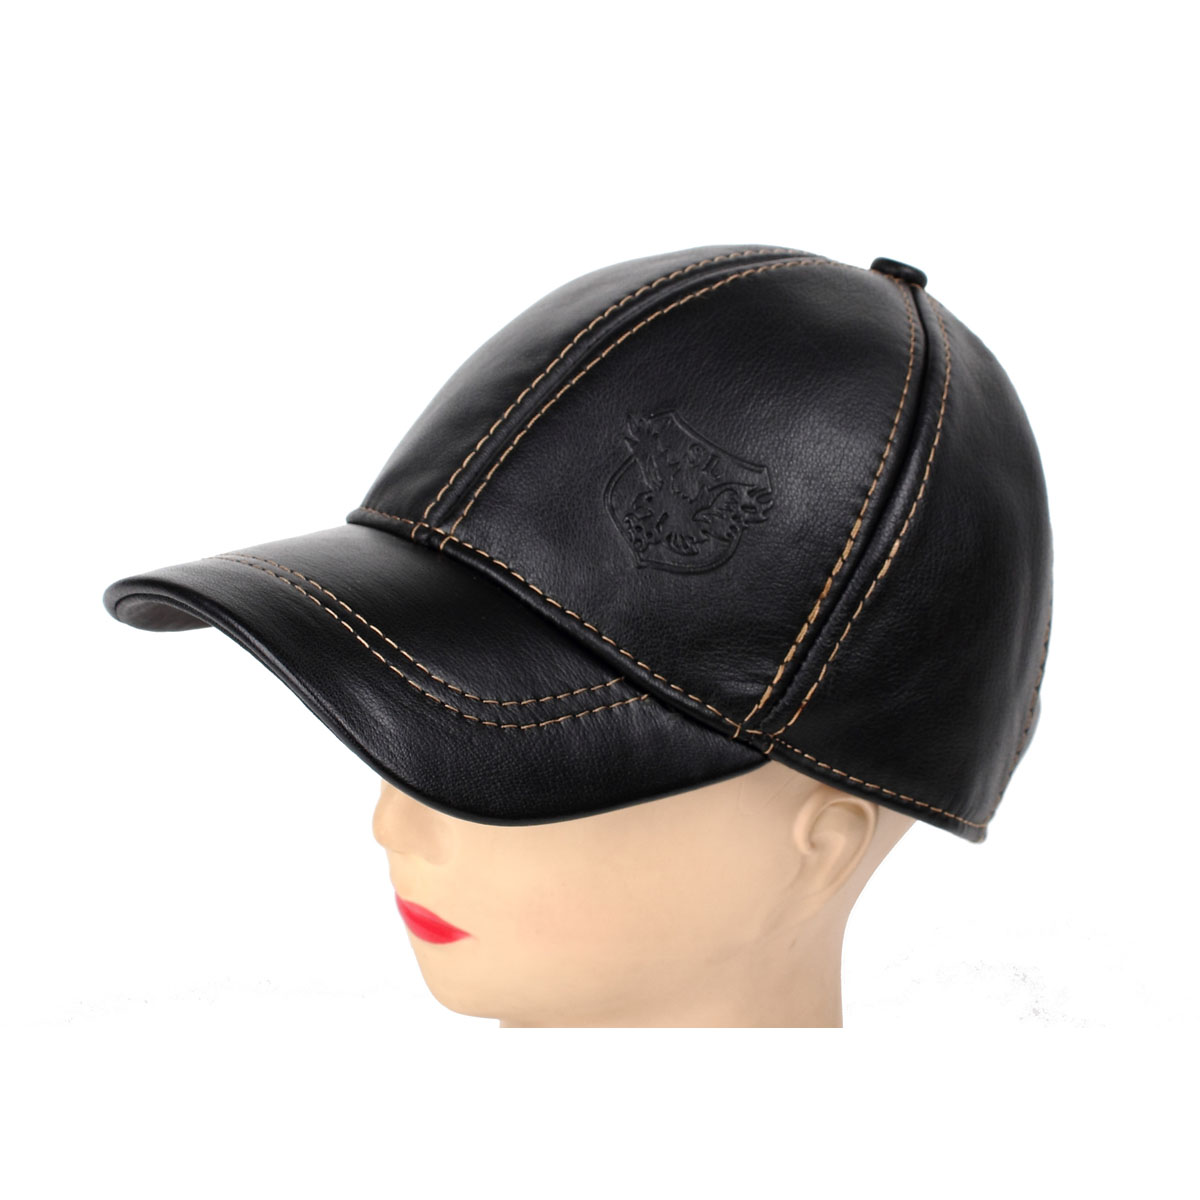 fa2efcfde11 Get Quotations · Free shipping 2014 Winter Fur cap hat short brim fashion  leather hat genuine leather cowhide hat